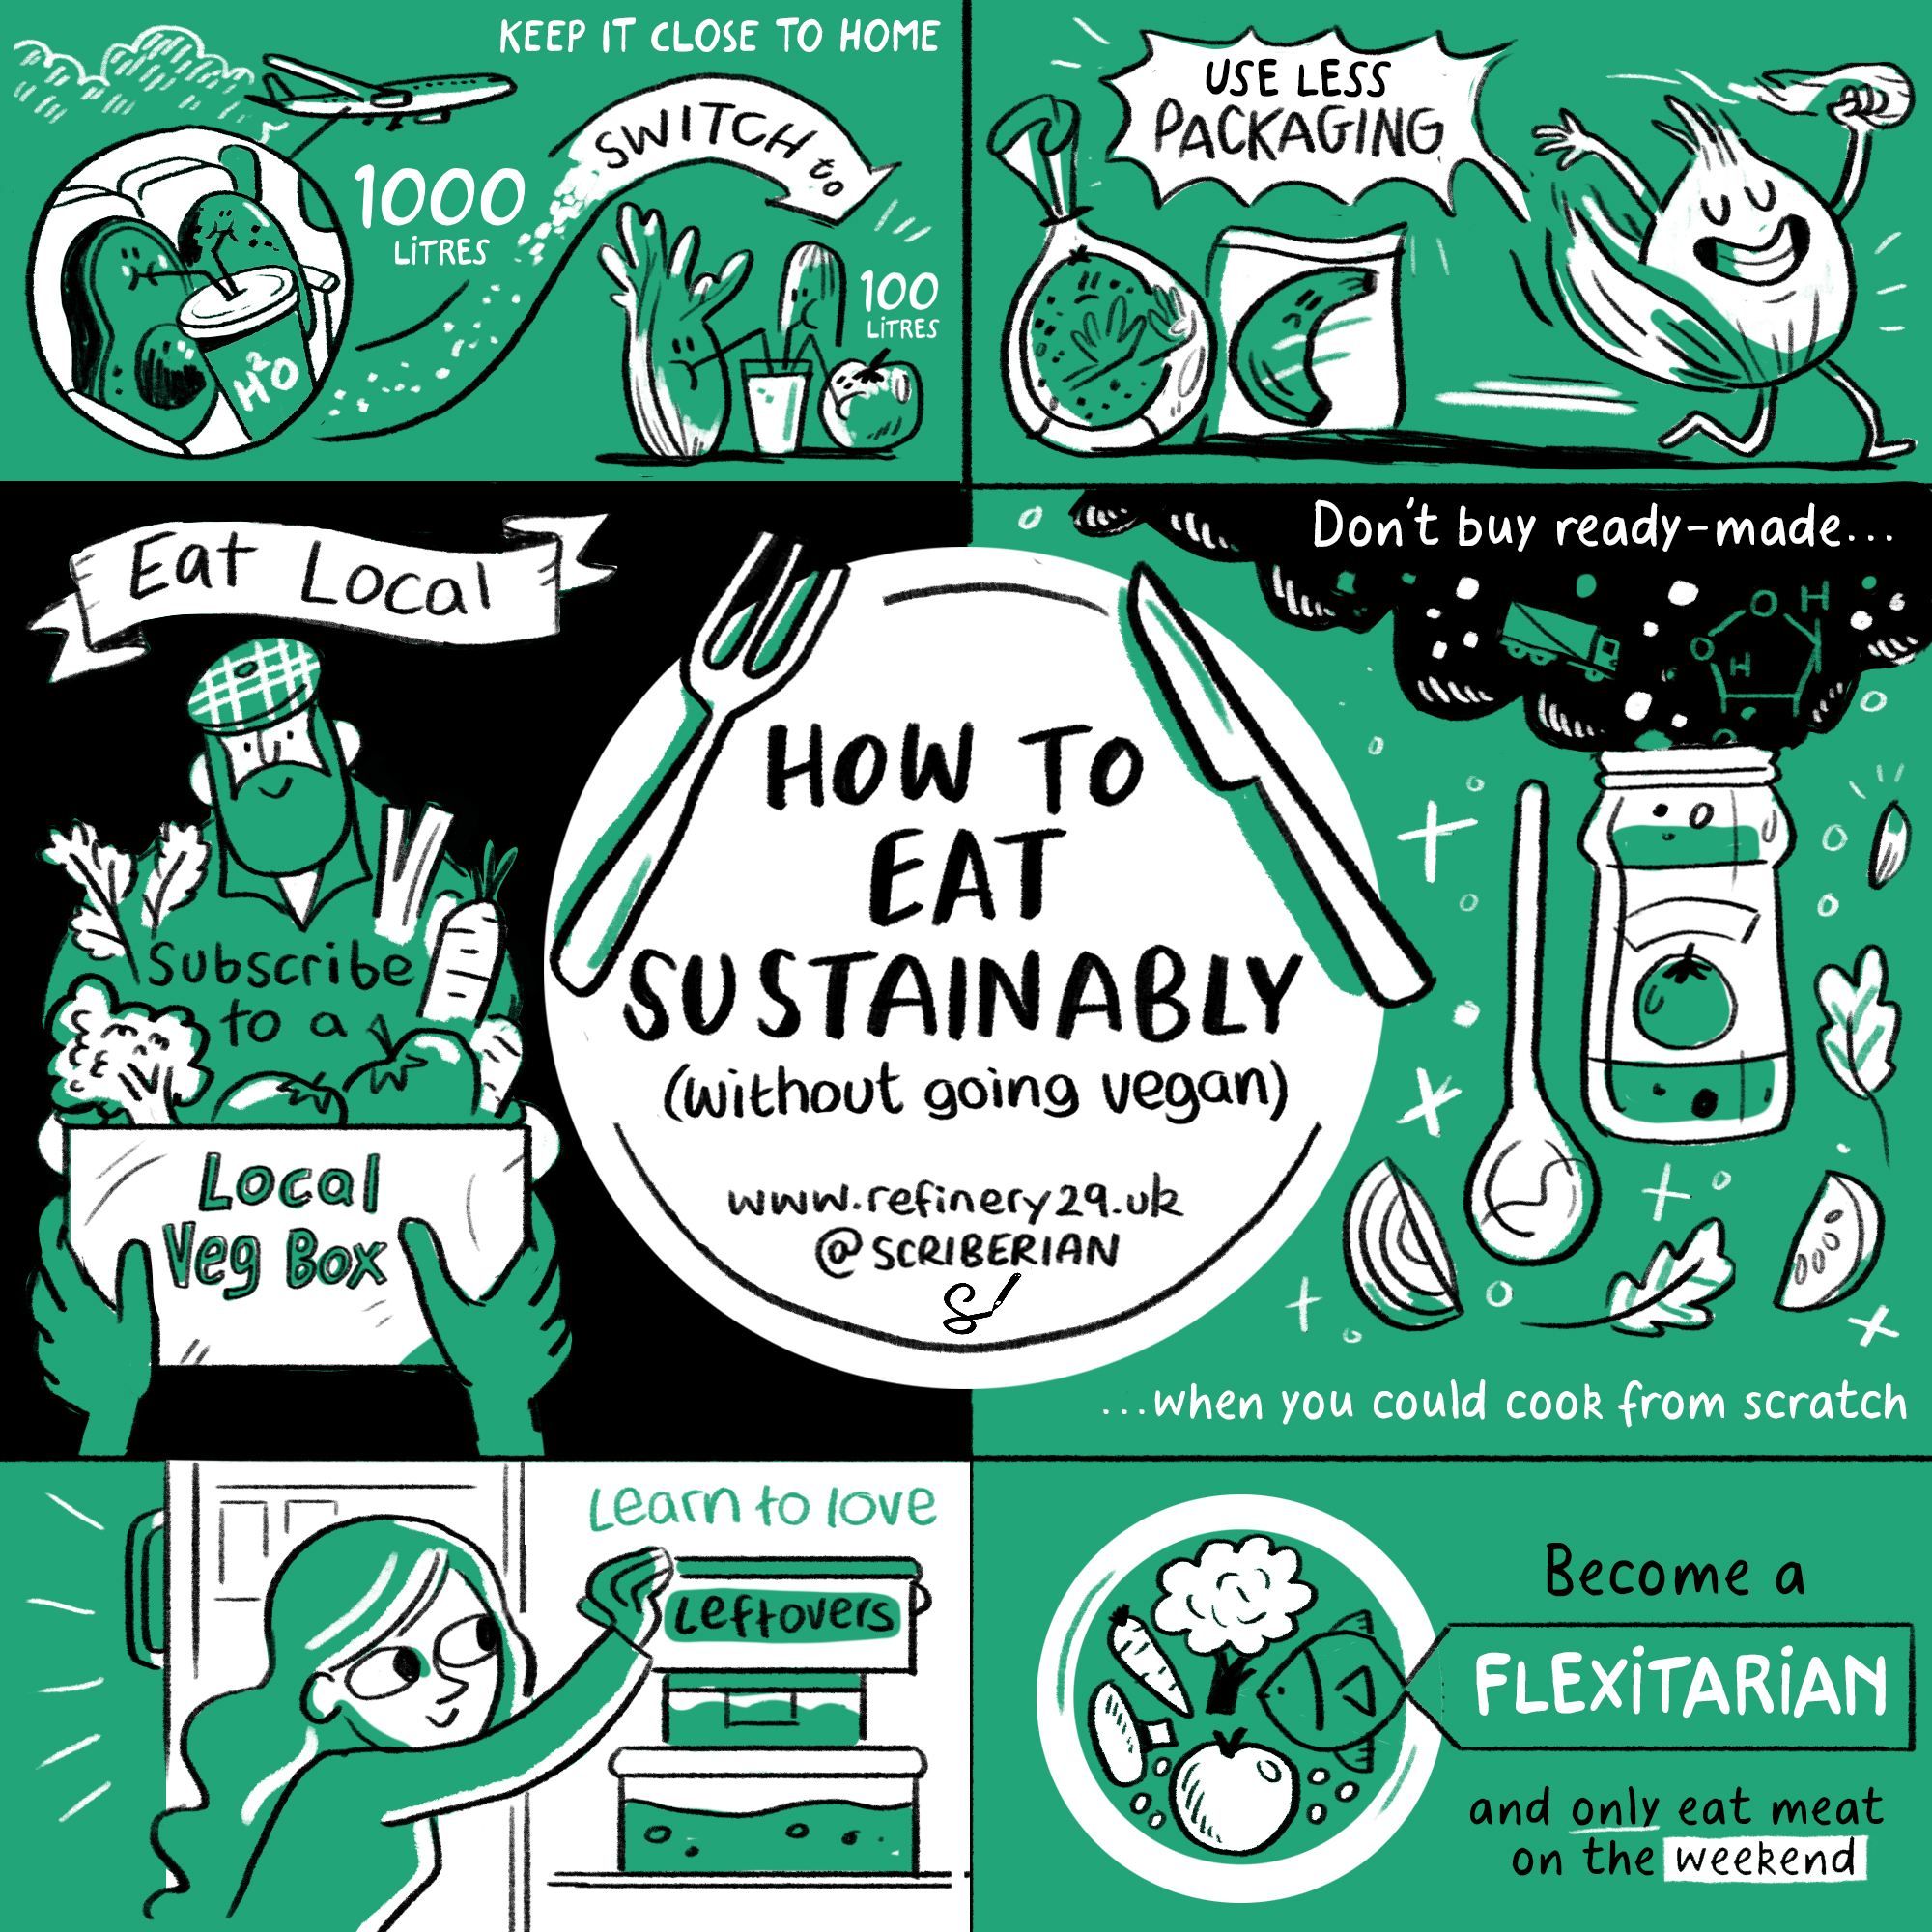 How to eat sustainably without going vegan, by Rose Lander. Source:  Refinery29